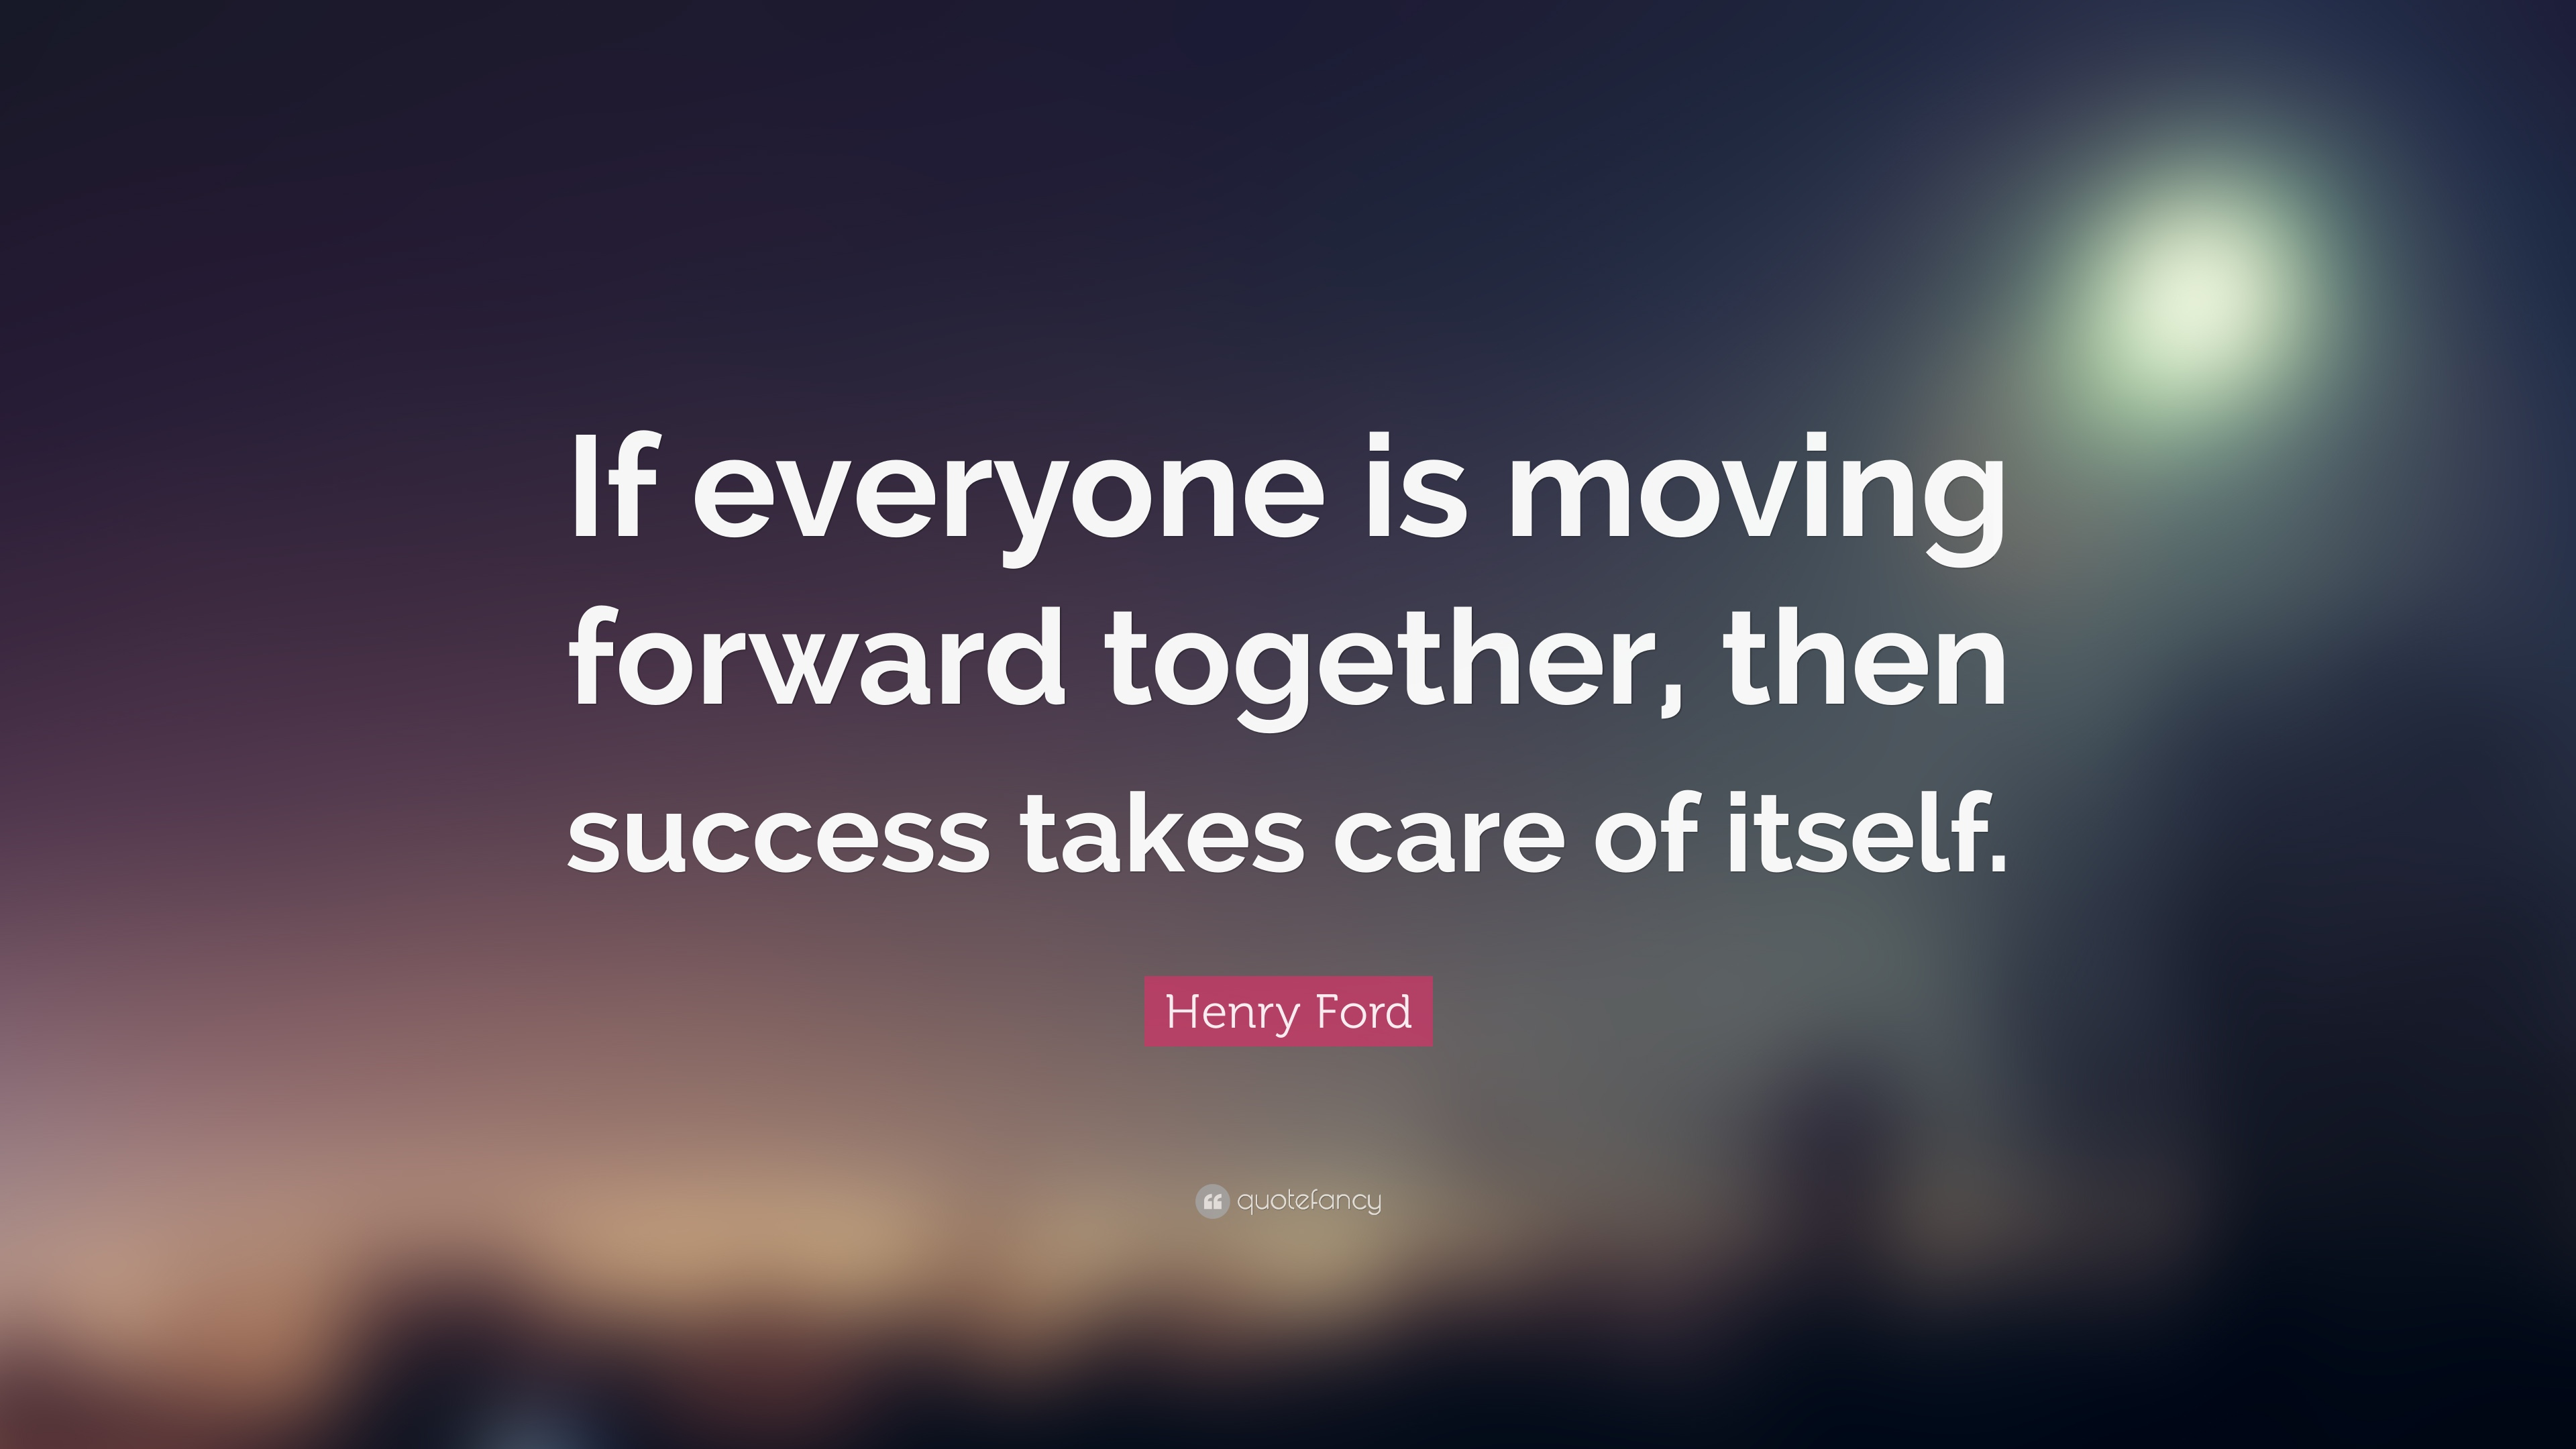 Beautiful Quotes For Friends With Wallpaper Henry Ford Quote If Everyone Is Moving Forward Together